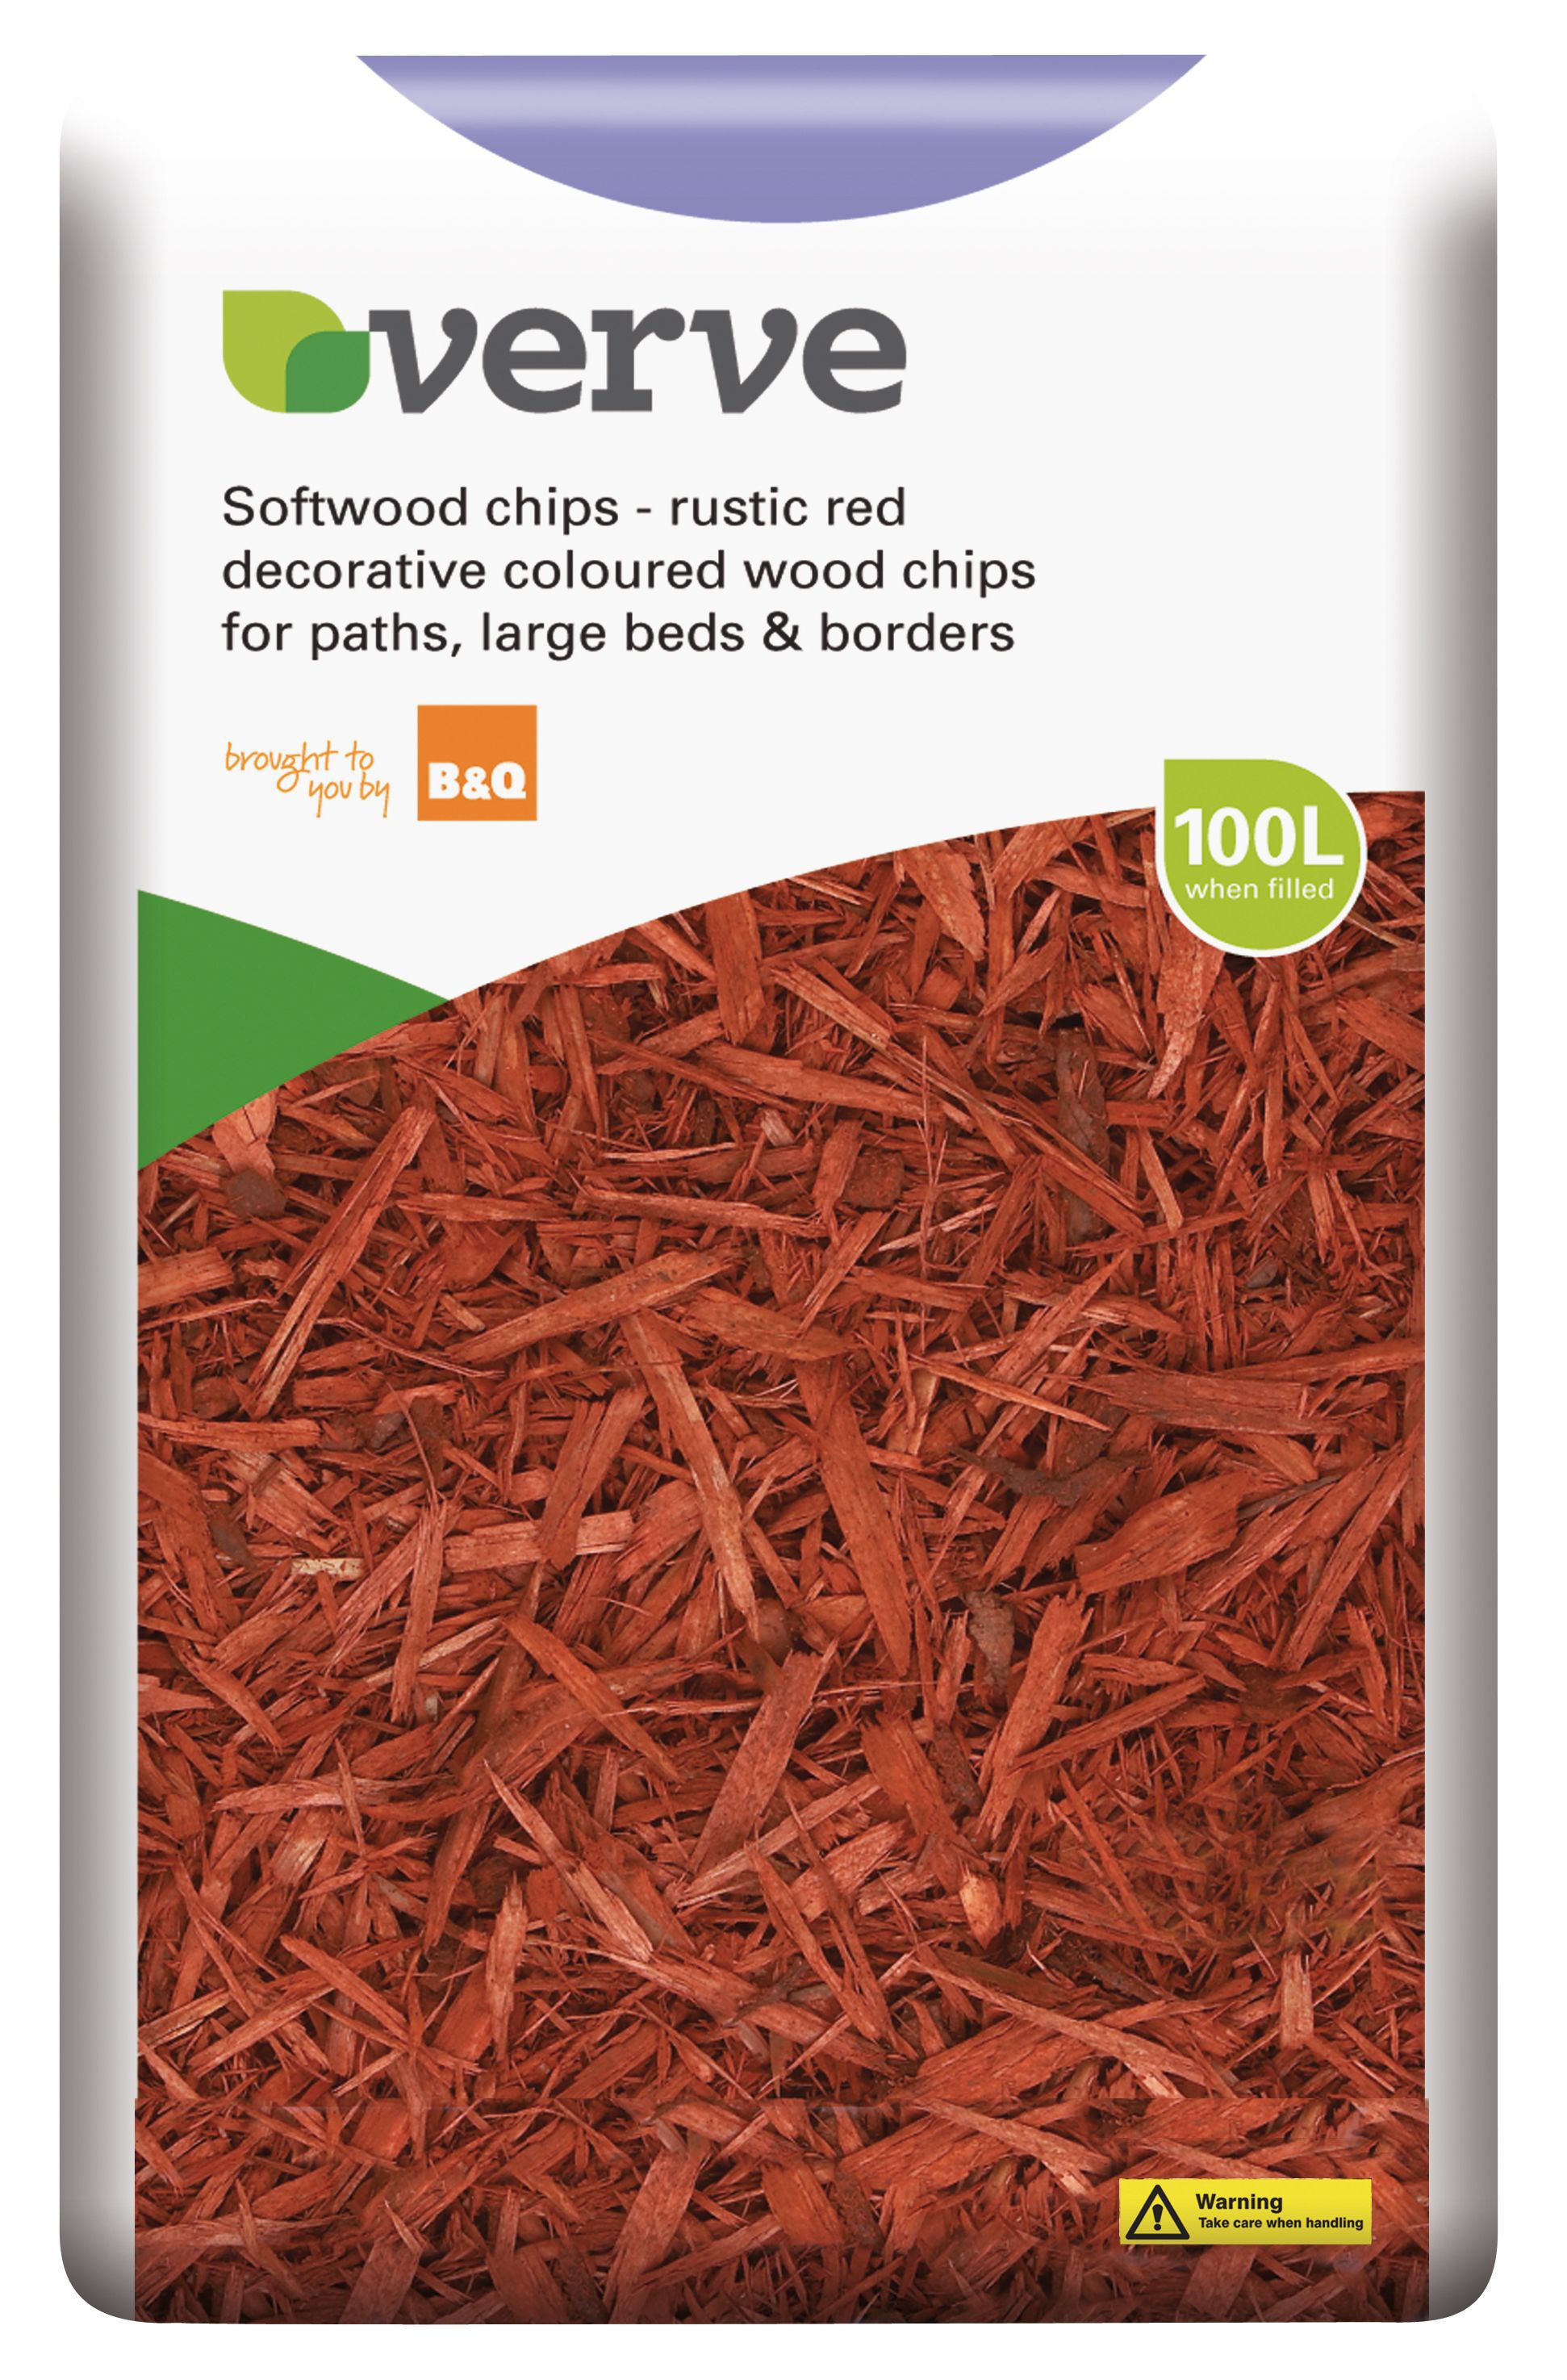 chairs in a bag rooms to go recliner verve bark chipping 100l bulk | departments diy at b&q